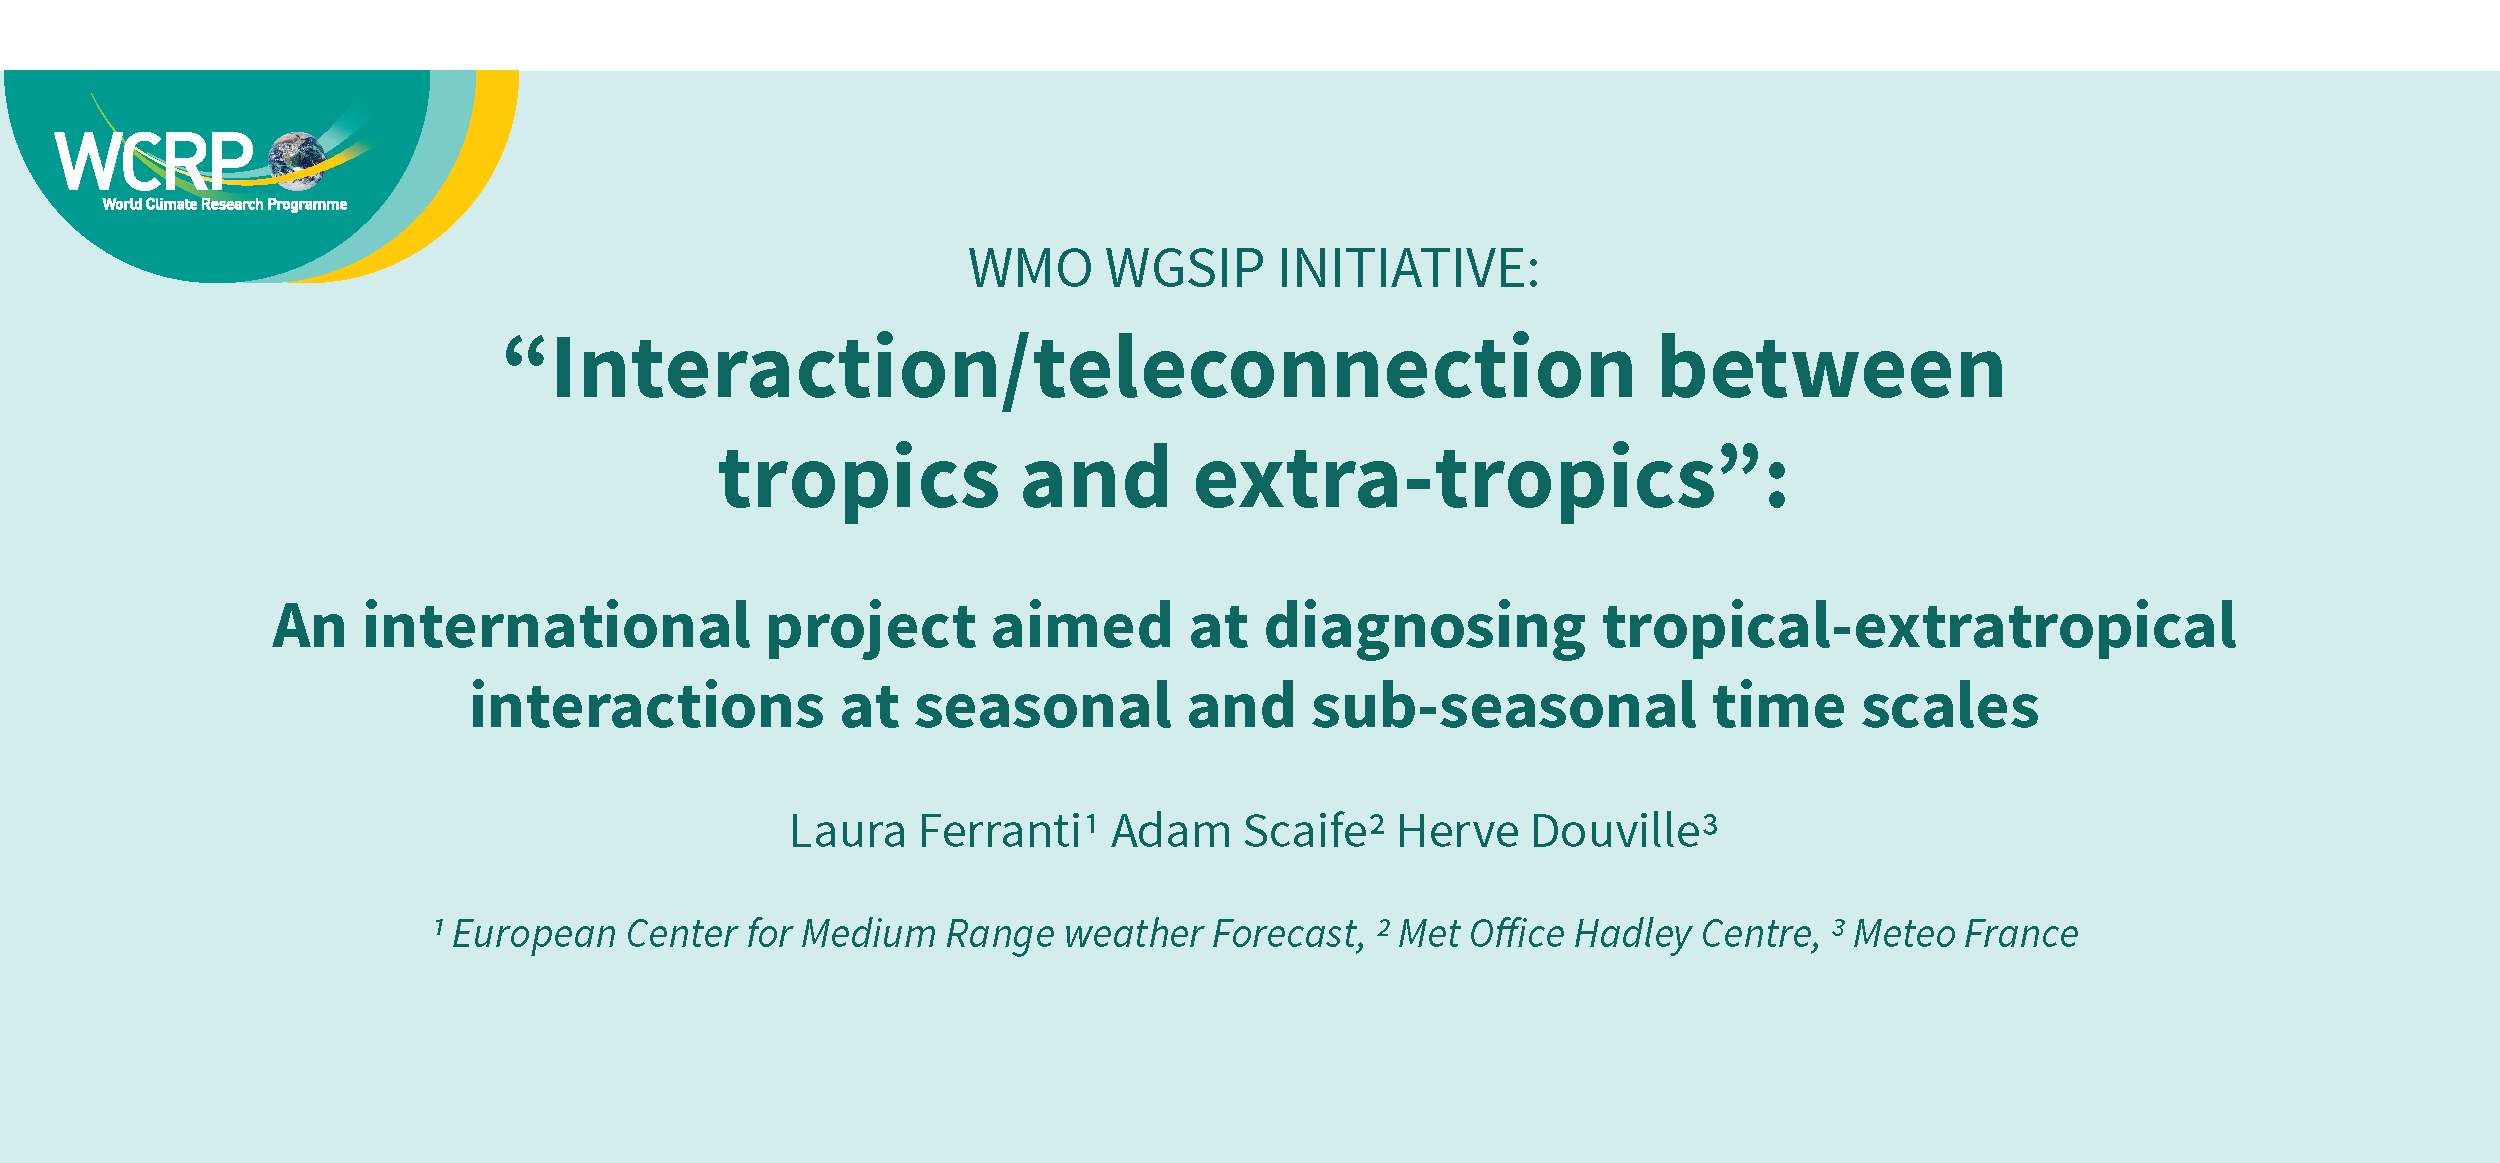 Interaction/teleconnection between tropics and extra-tropics